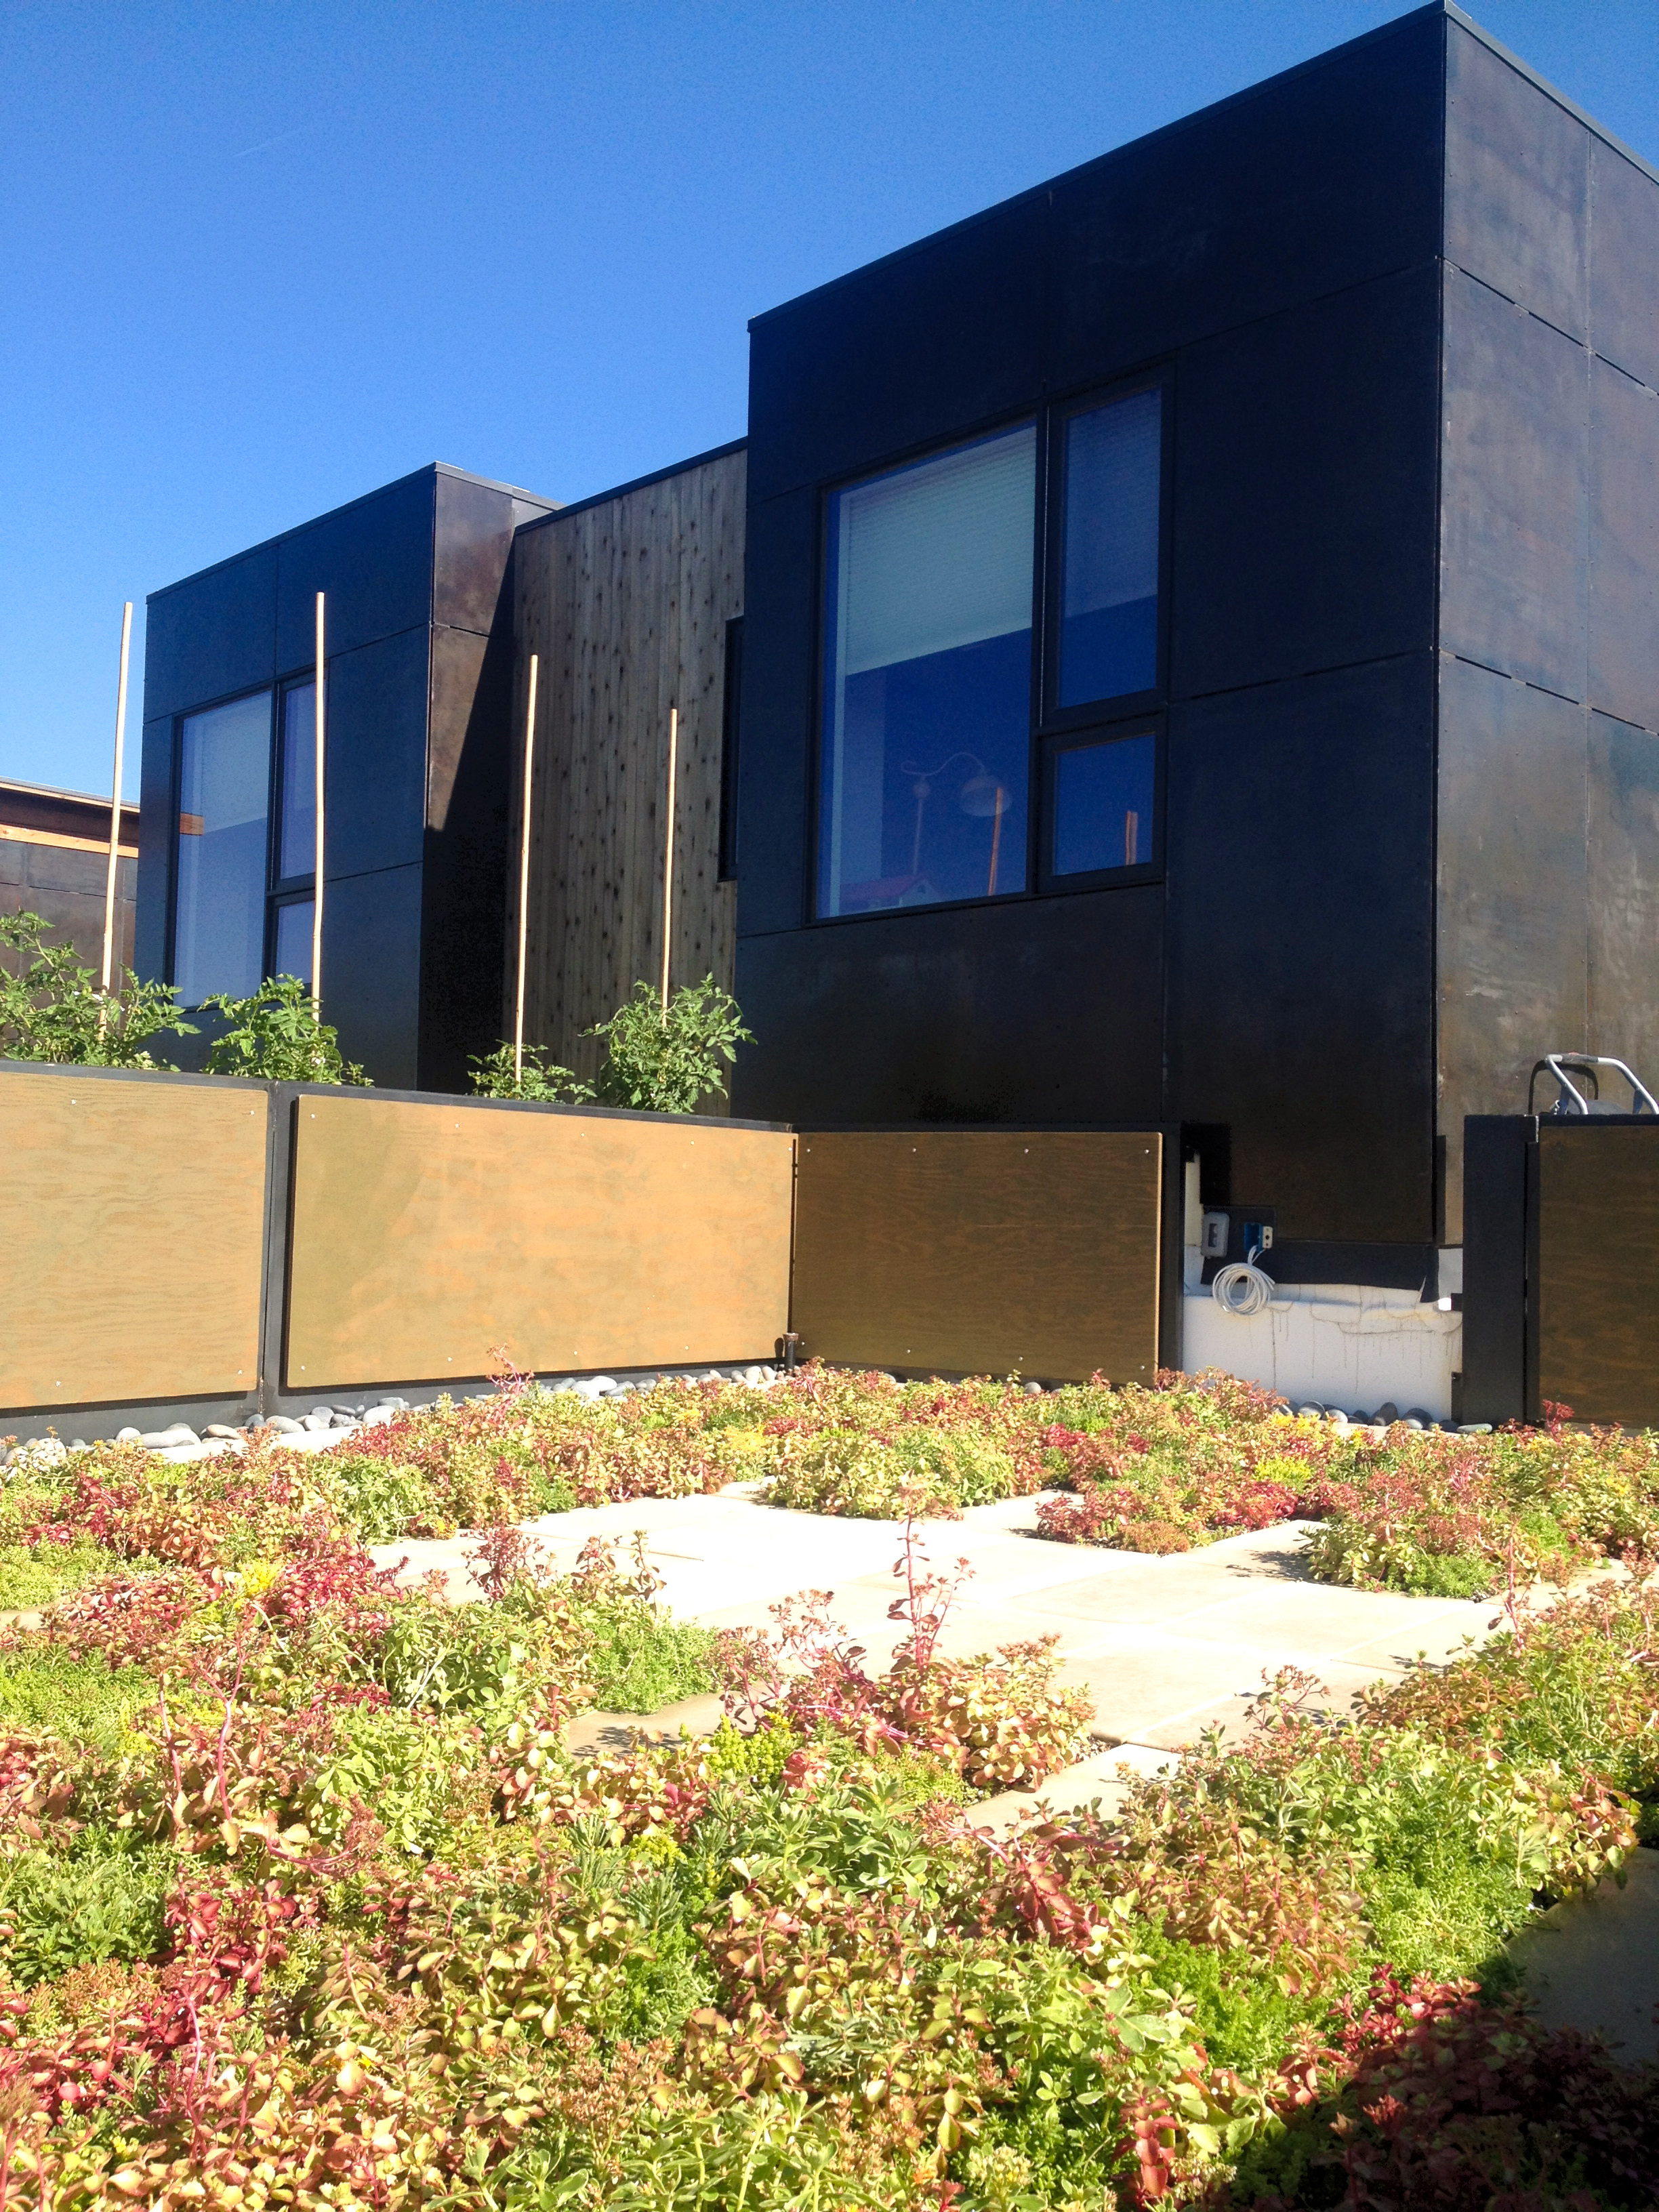 Single Story Extension Cost >> Green Roof Benefits - Intermountain Roofscapes